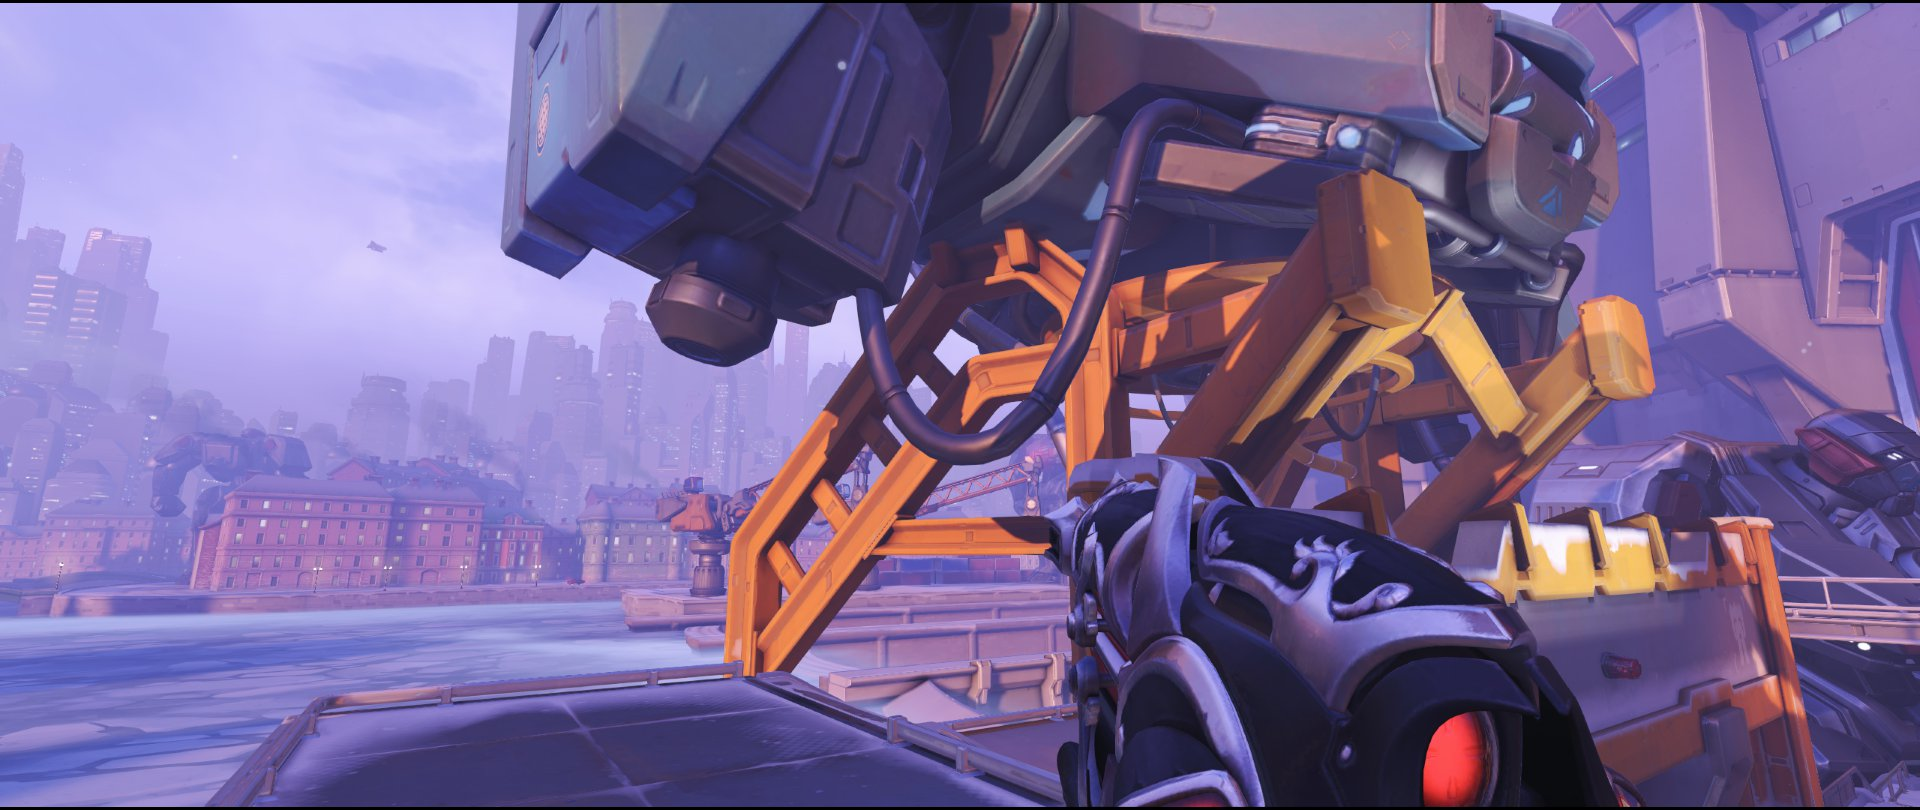 Robot attack sniping spot Widowmaker Volskaya Industries Overwatch.jpg